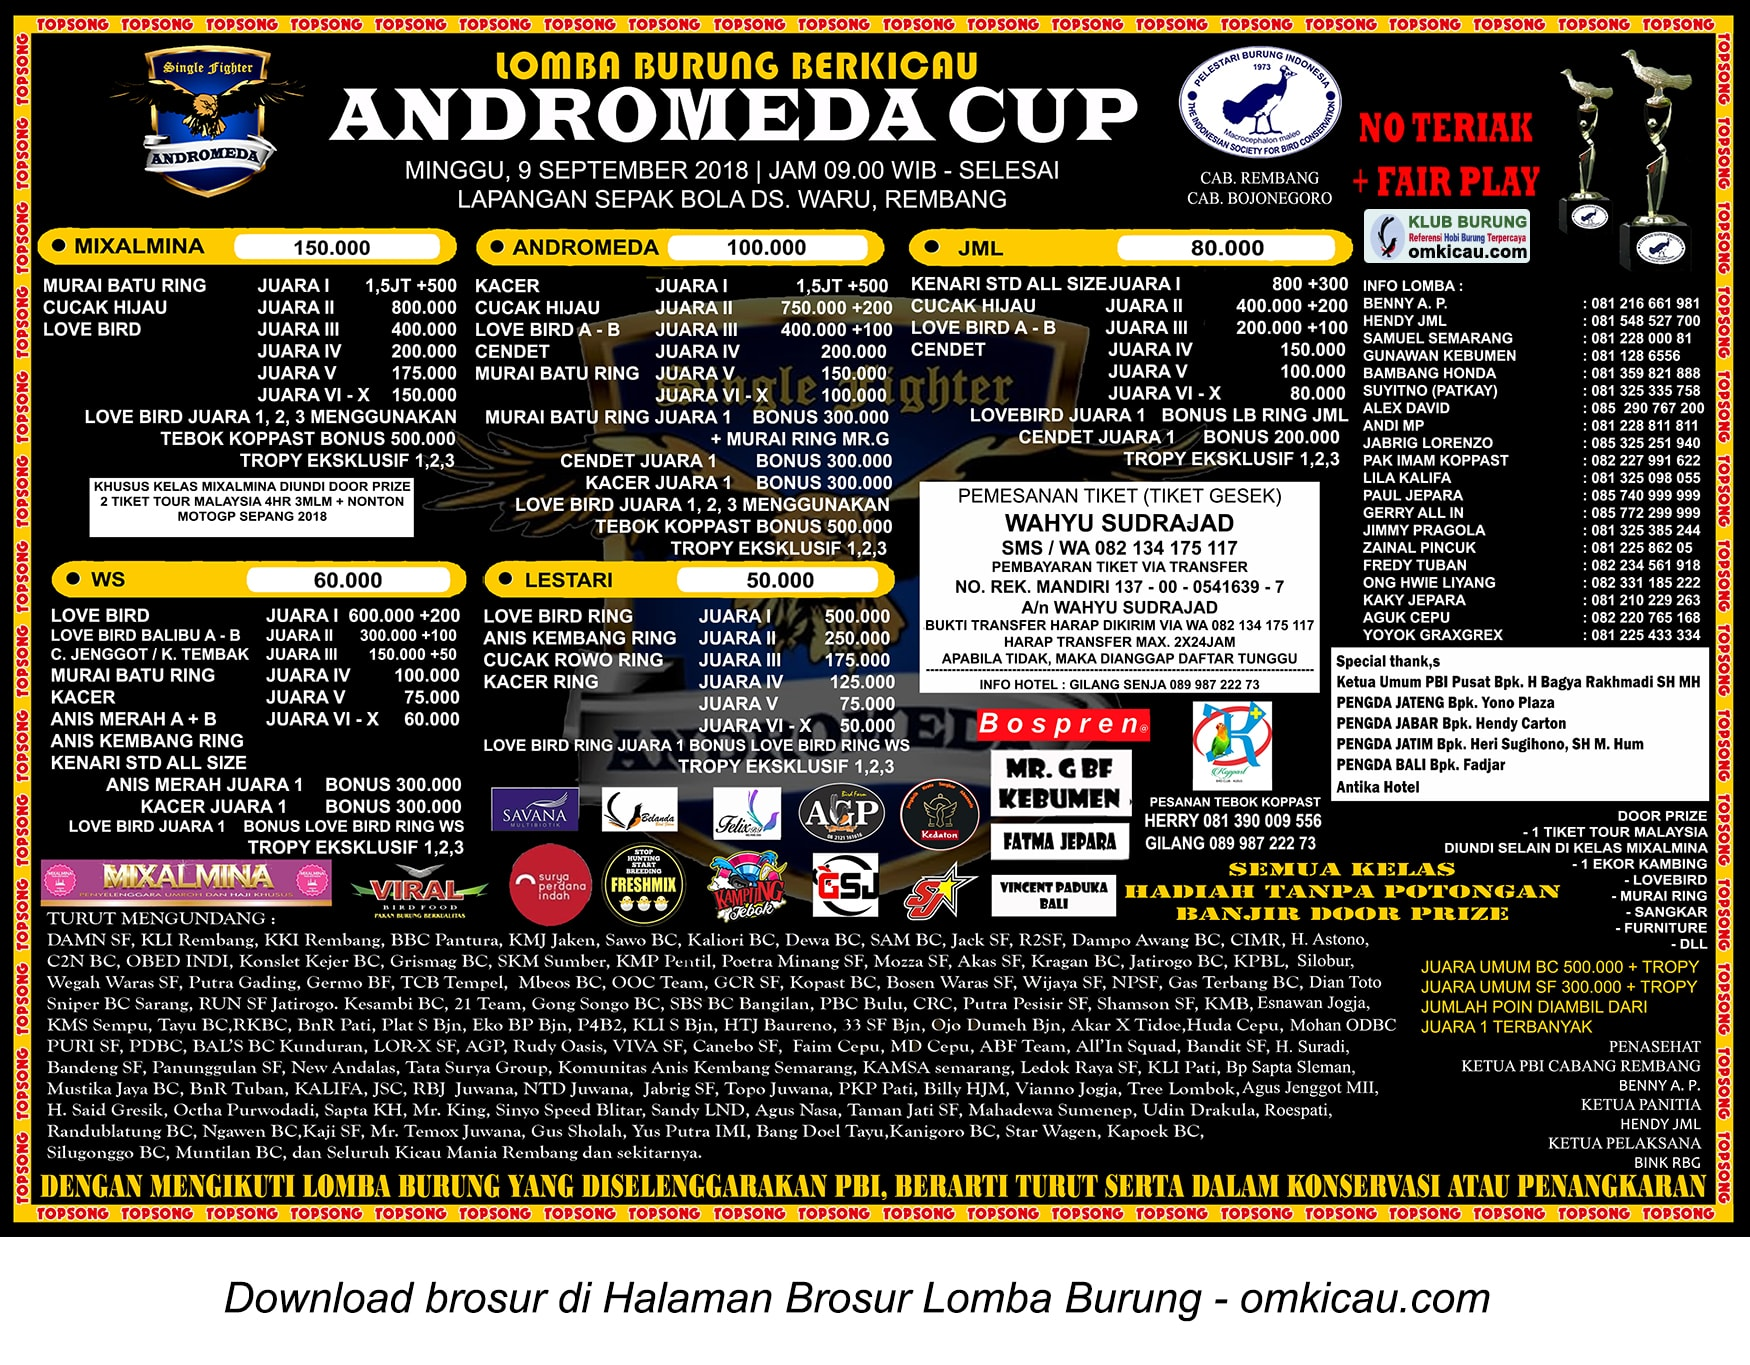 Andromeda Cup